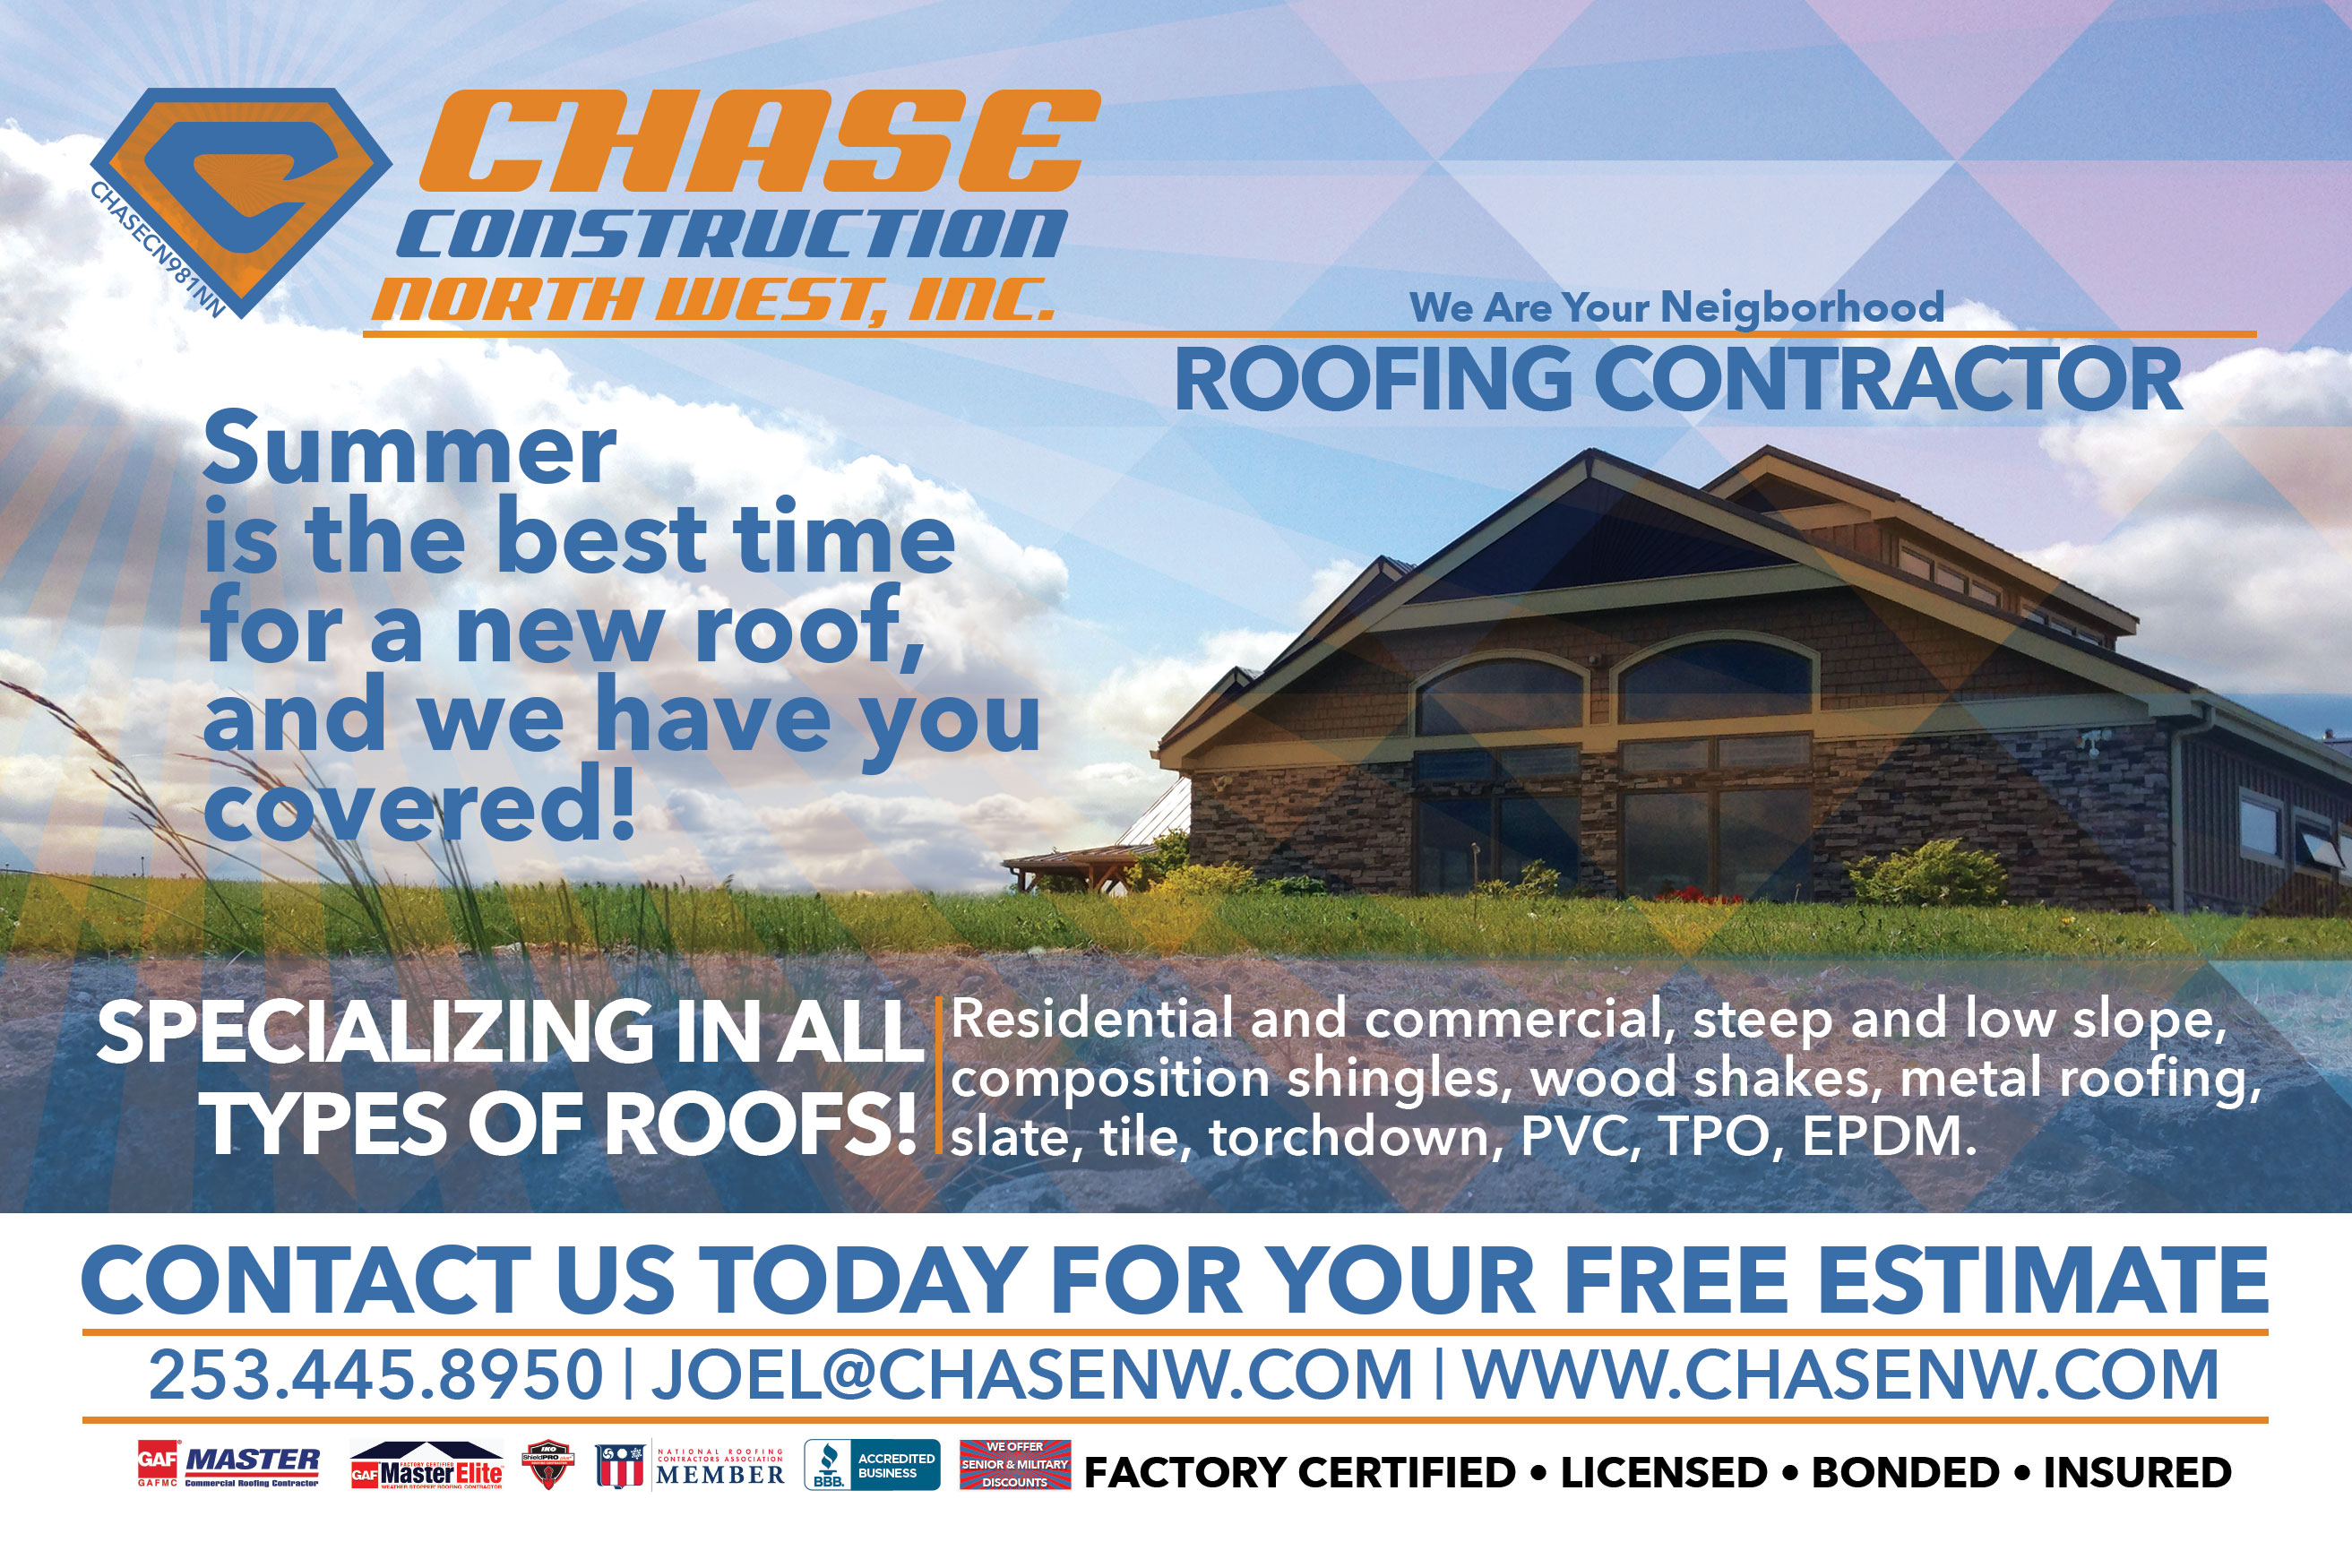 Chase Construction NW, Inc. Your Neighborhood Roofing Contractor